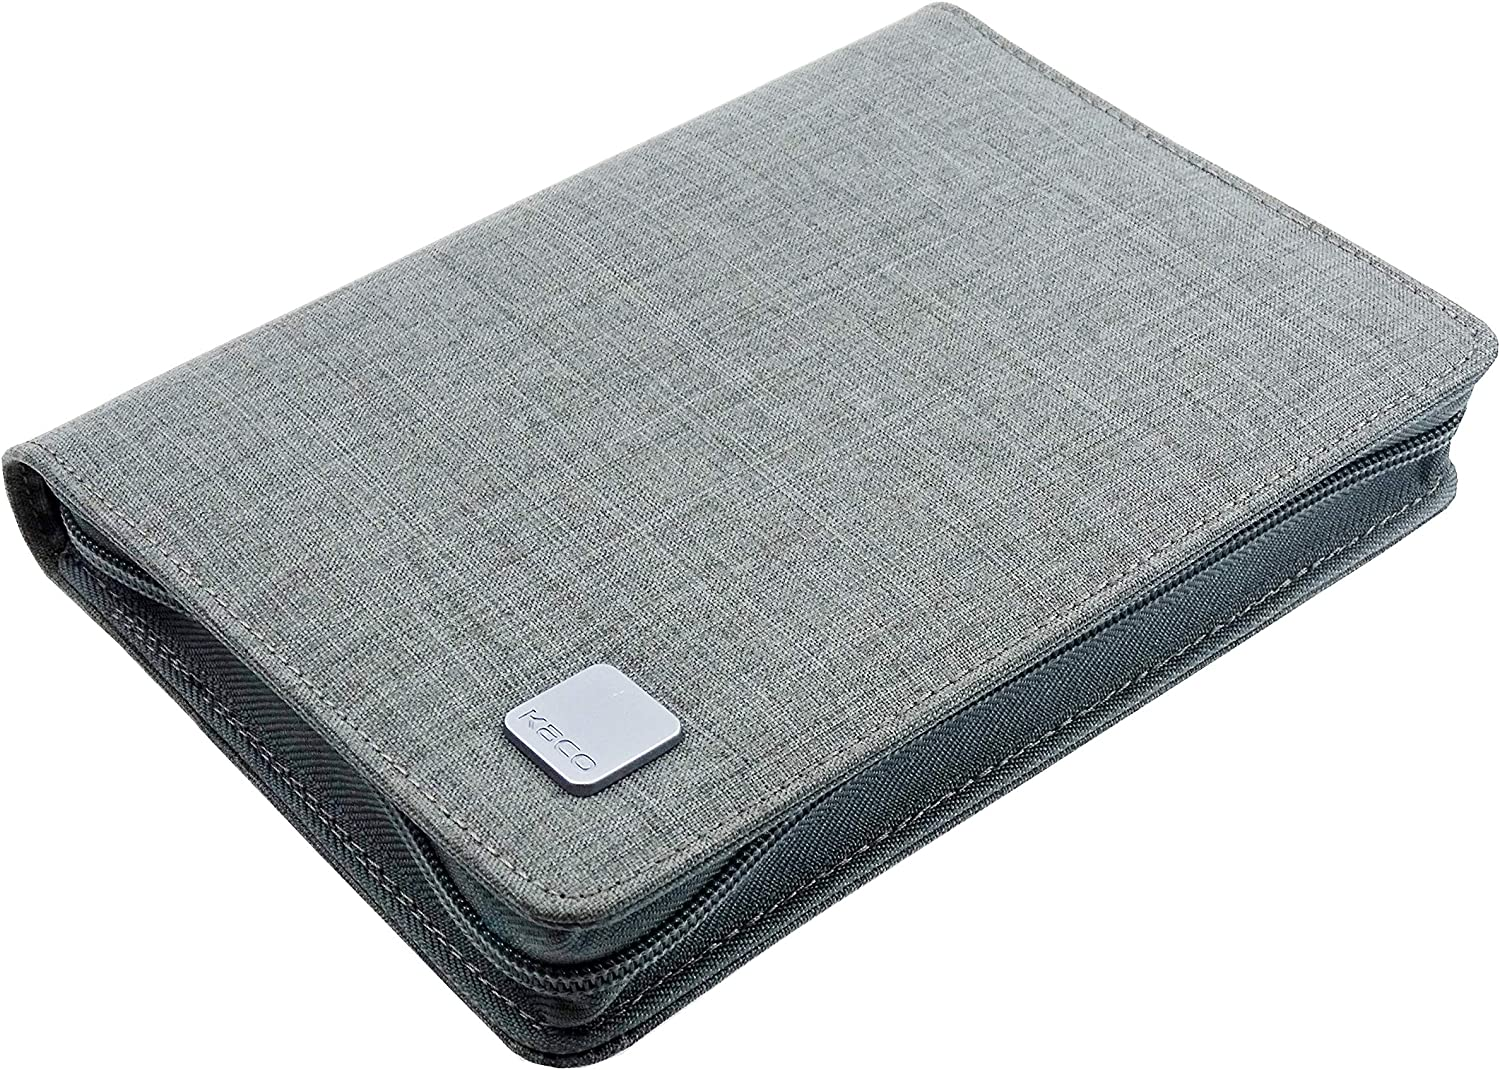 New Shipping Free Classic 10 Slots Fountain Pen Case Holder Gray Di Canvas Waterproof